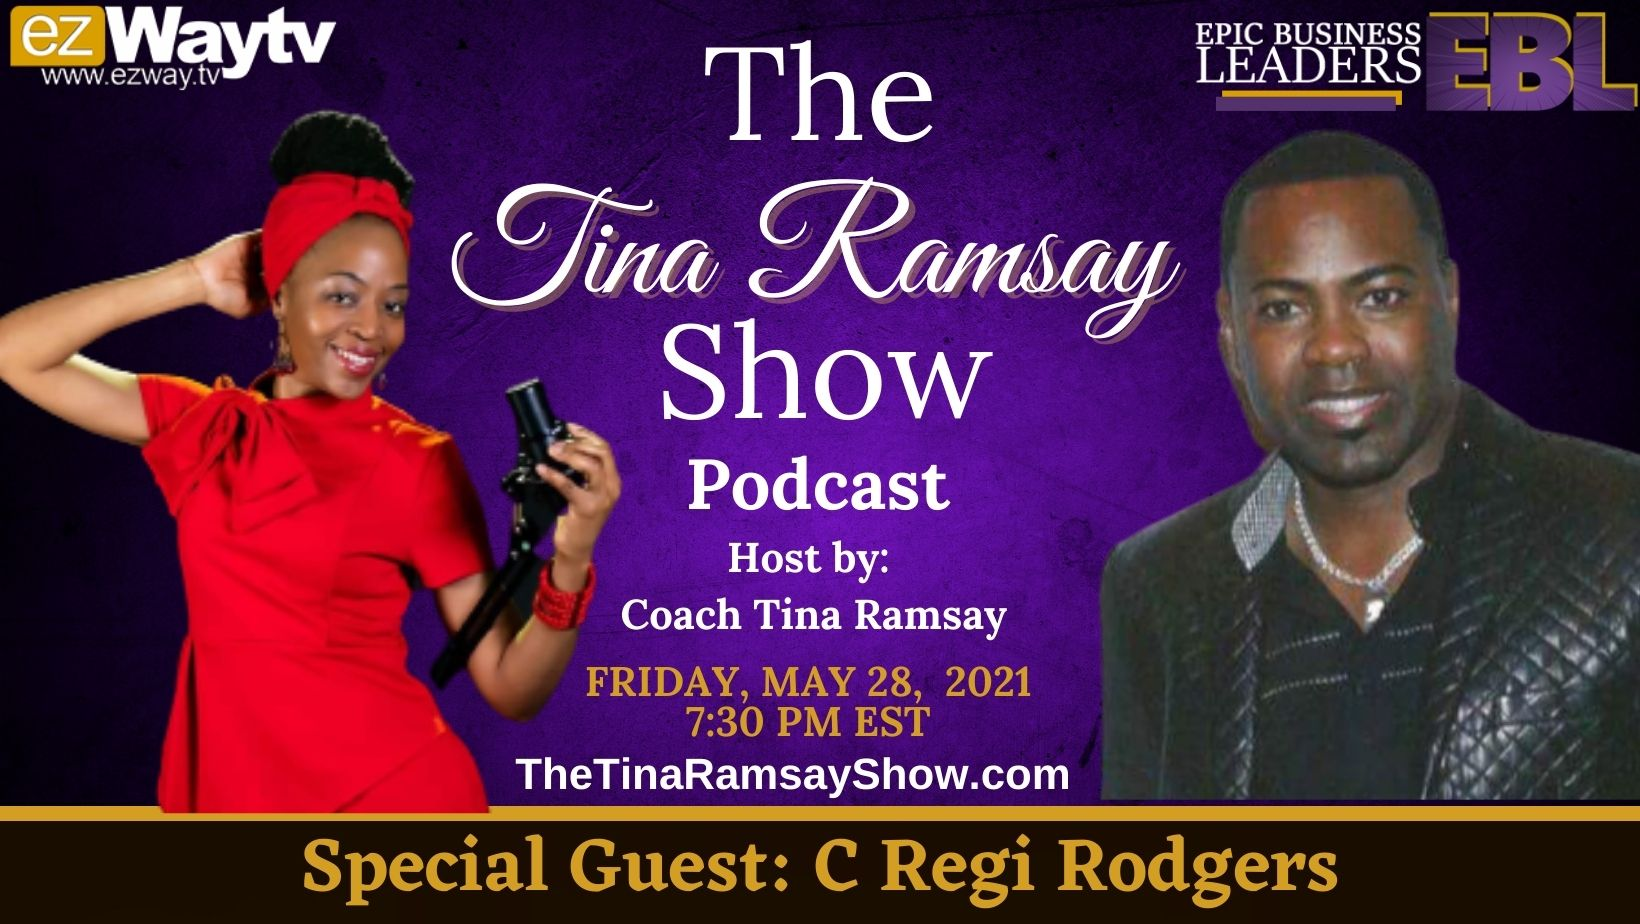 The Tina Ramsay Show Featuring  Relationship Coach C. Regi Rodgers